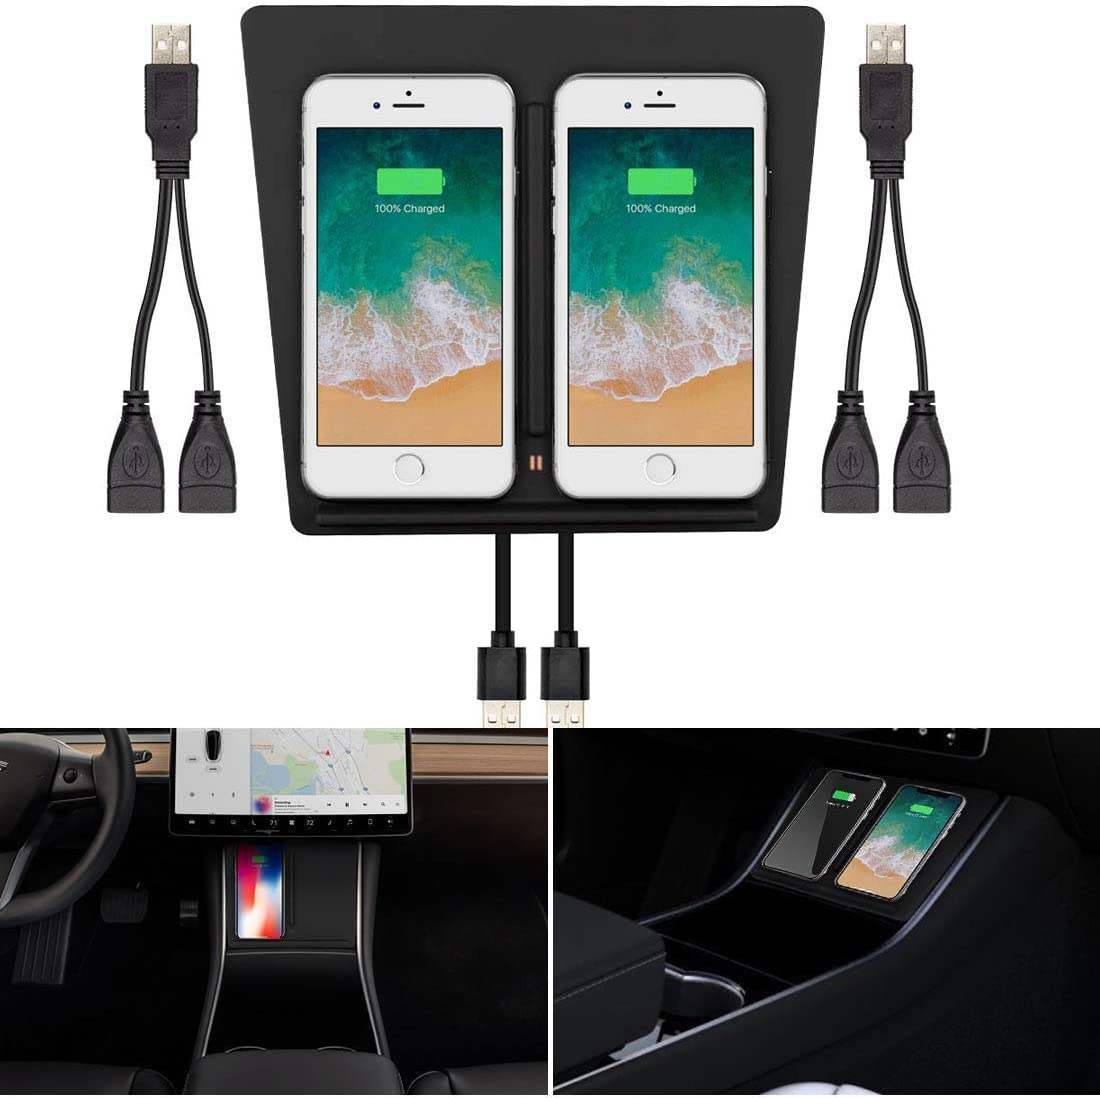 No Software Issue Upgraded Version 2 Wireless Phone Charger Pad Dock Center Dock Center Console Dual Phones Charging M3FUTURE Tesla Model 3 Accessories